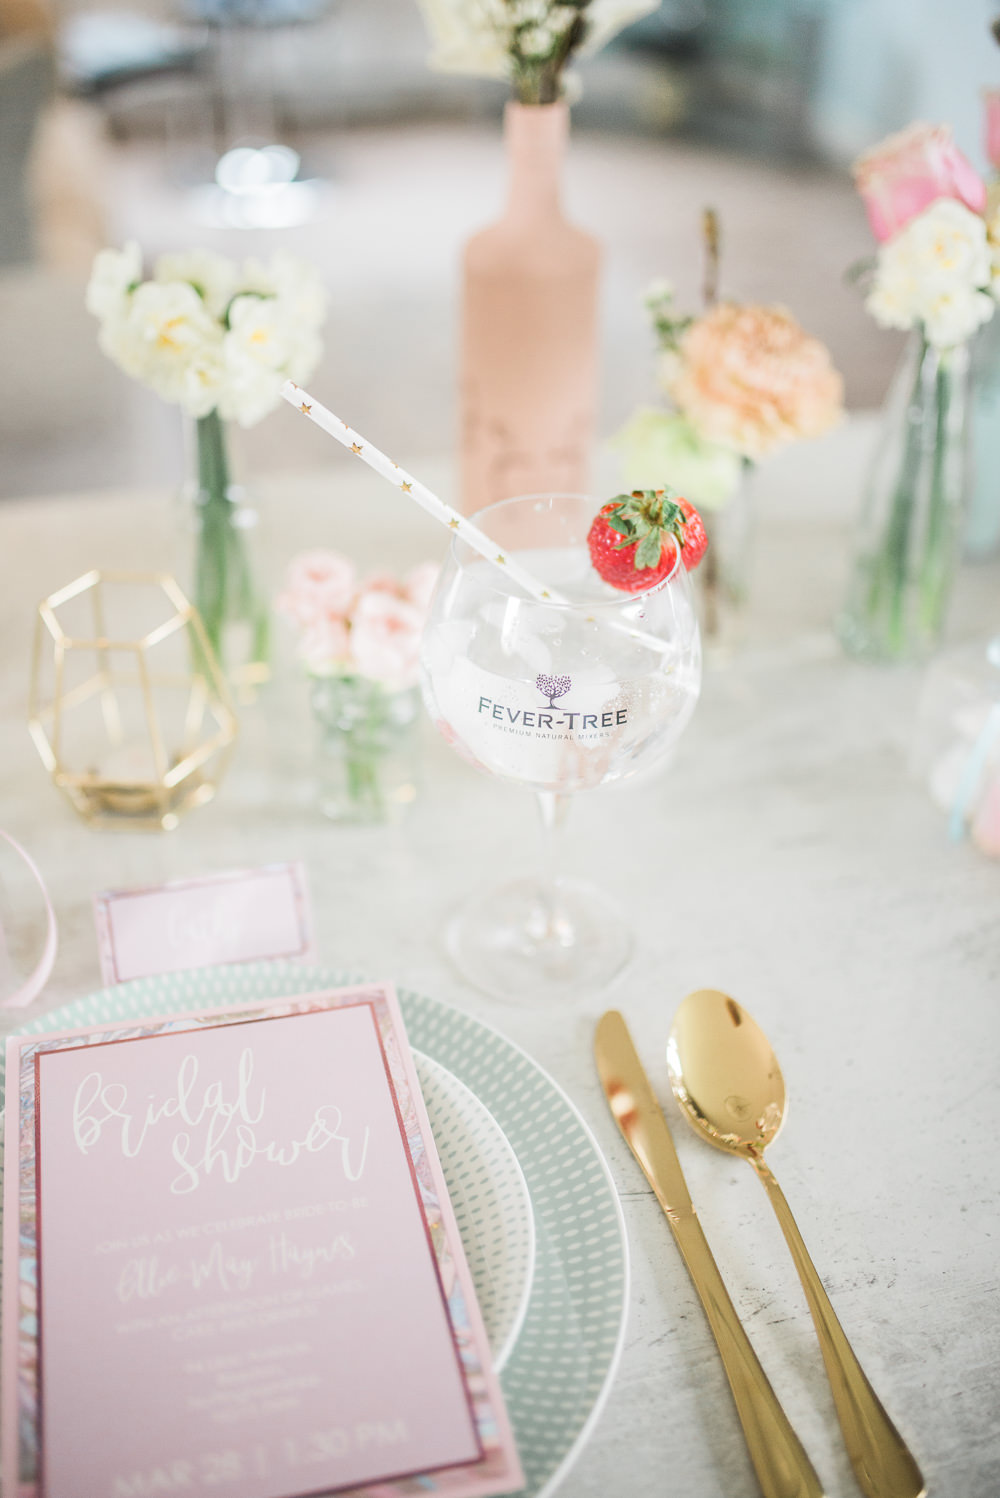 Place Setting Stationery Gold Cutlery Cocktail Springtime Bridal Shower Ideas Hen Party Laura Jane Photography